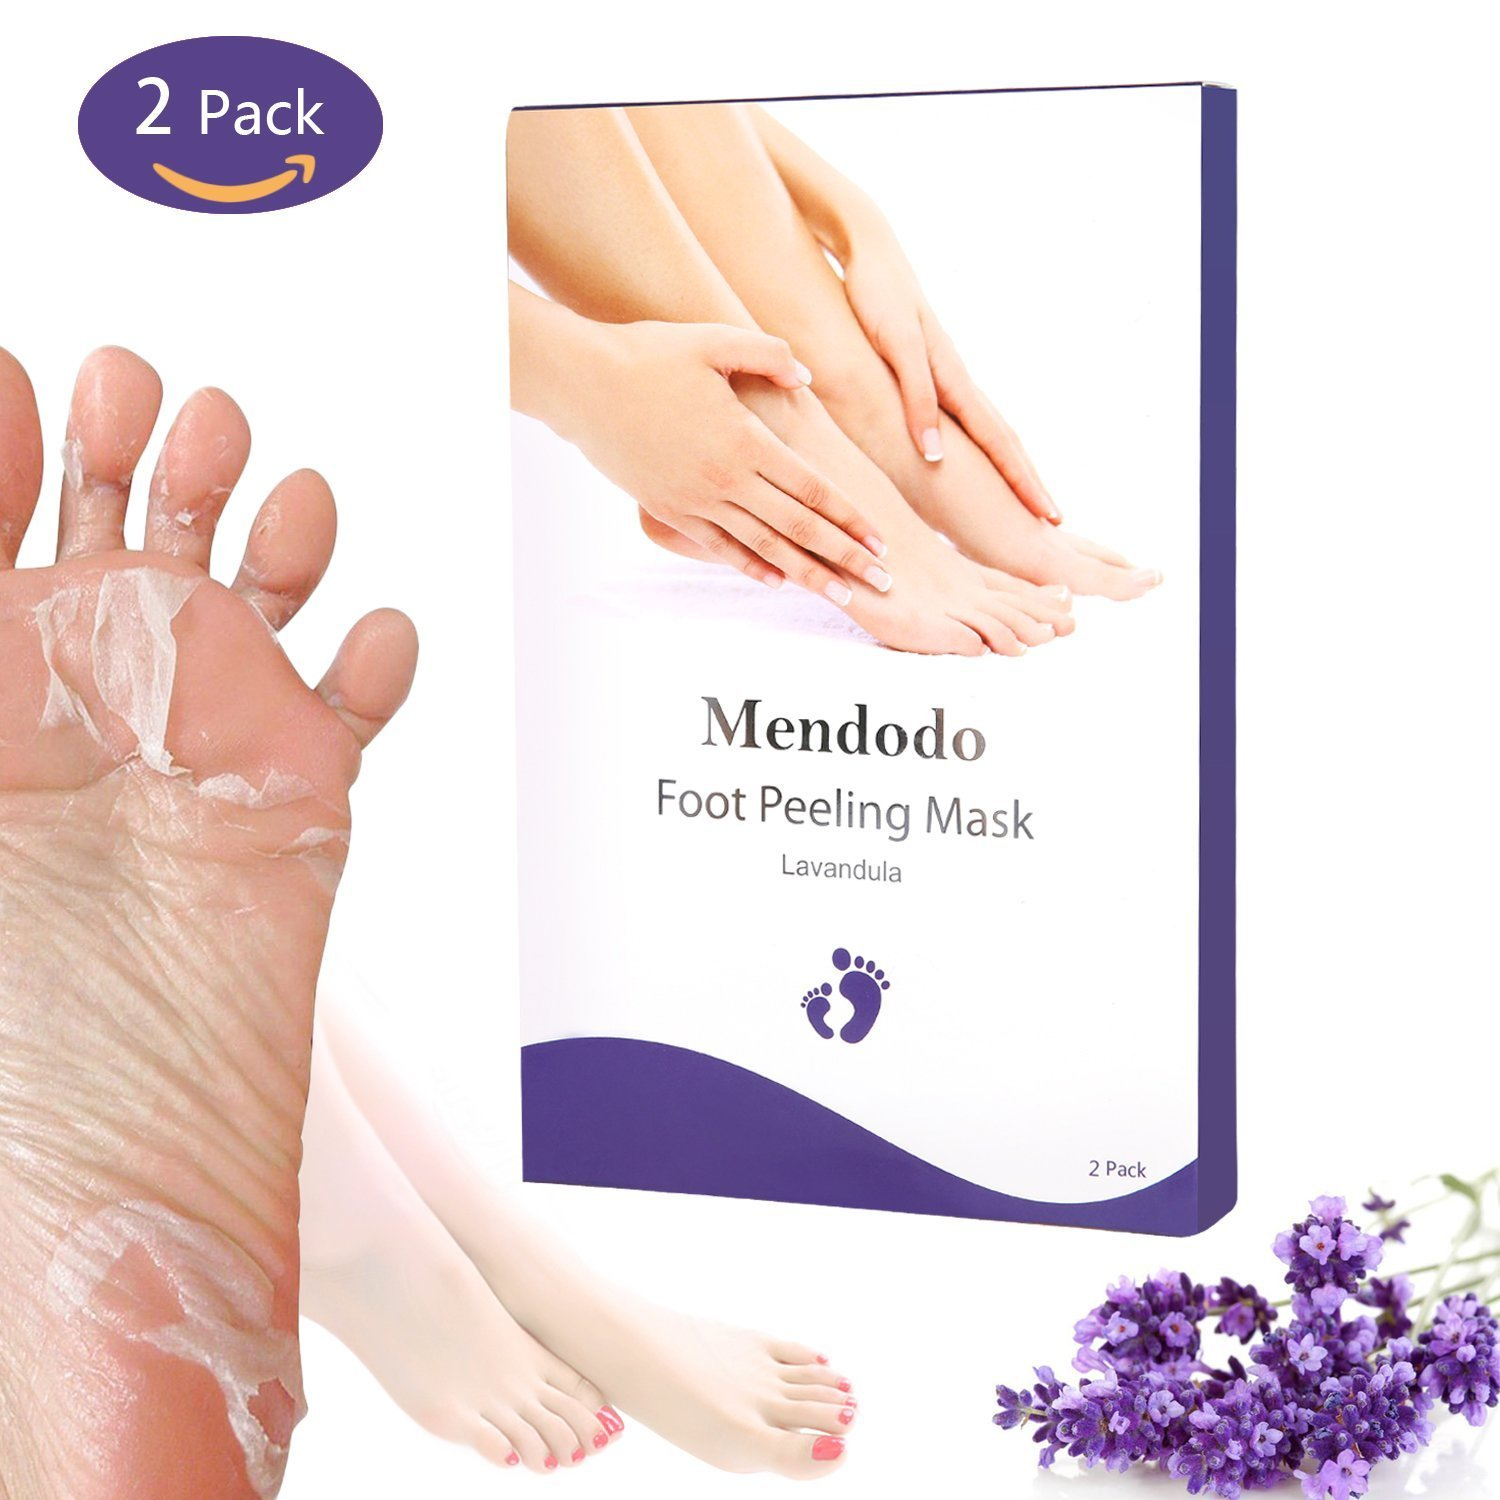 Foot Peel Mask, Mendodo 2 Pairs Foot Exfoliating Calluses and Dead Skin Remover Booties Repair Rough Heels Get Baby Soft Smooth feet in 1-2 Weeks- Lavender MendoTek